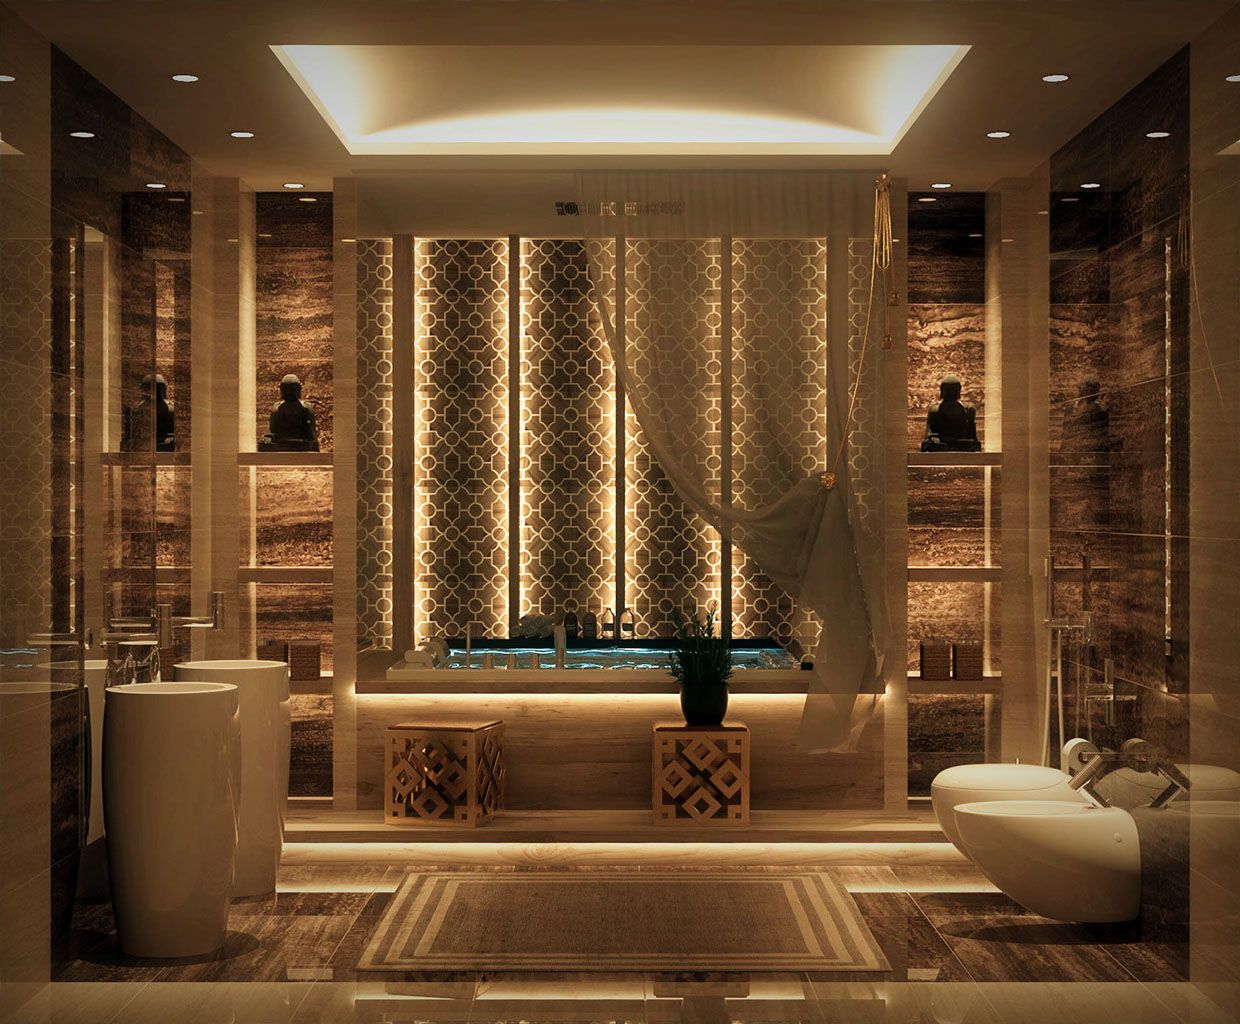 Luxurious Bathroom Designs Custom Luxurious Bathrooms With Stunning Design Details Inspiration